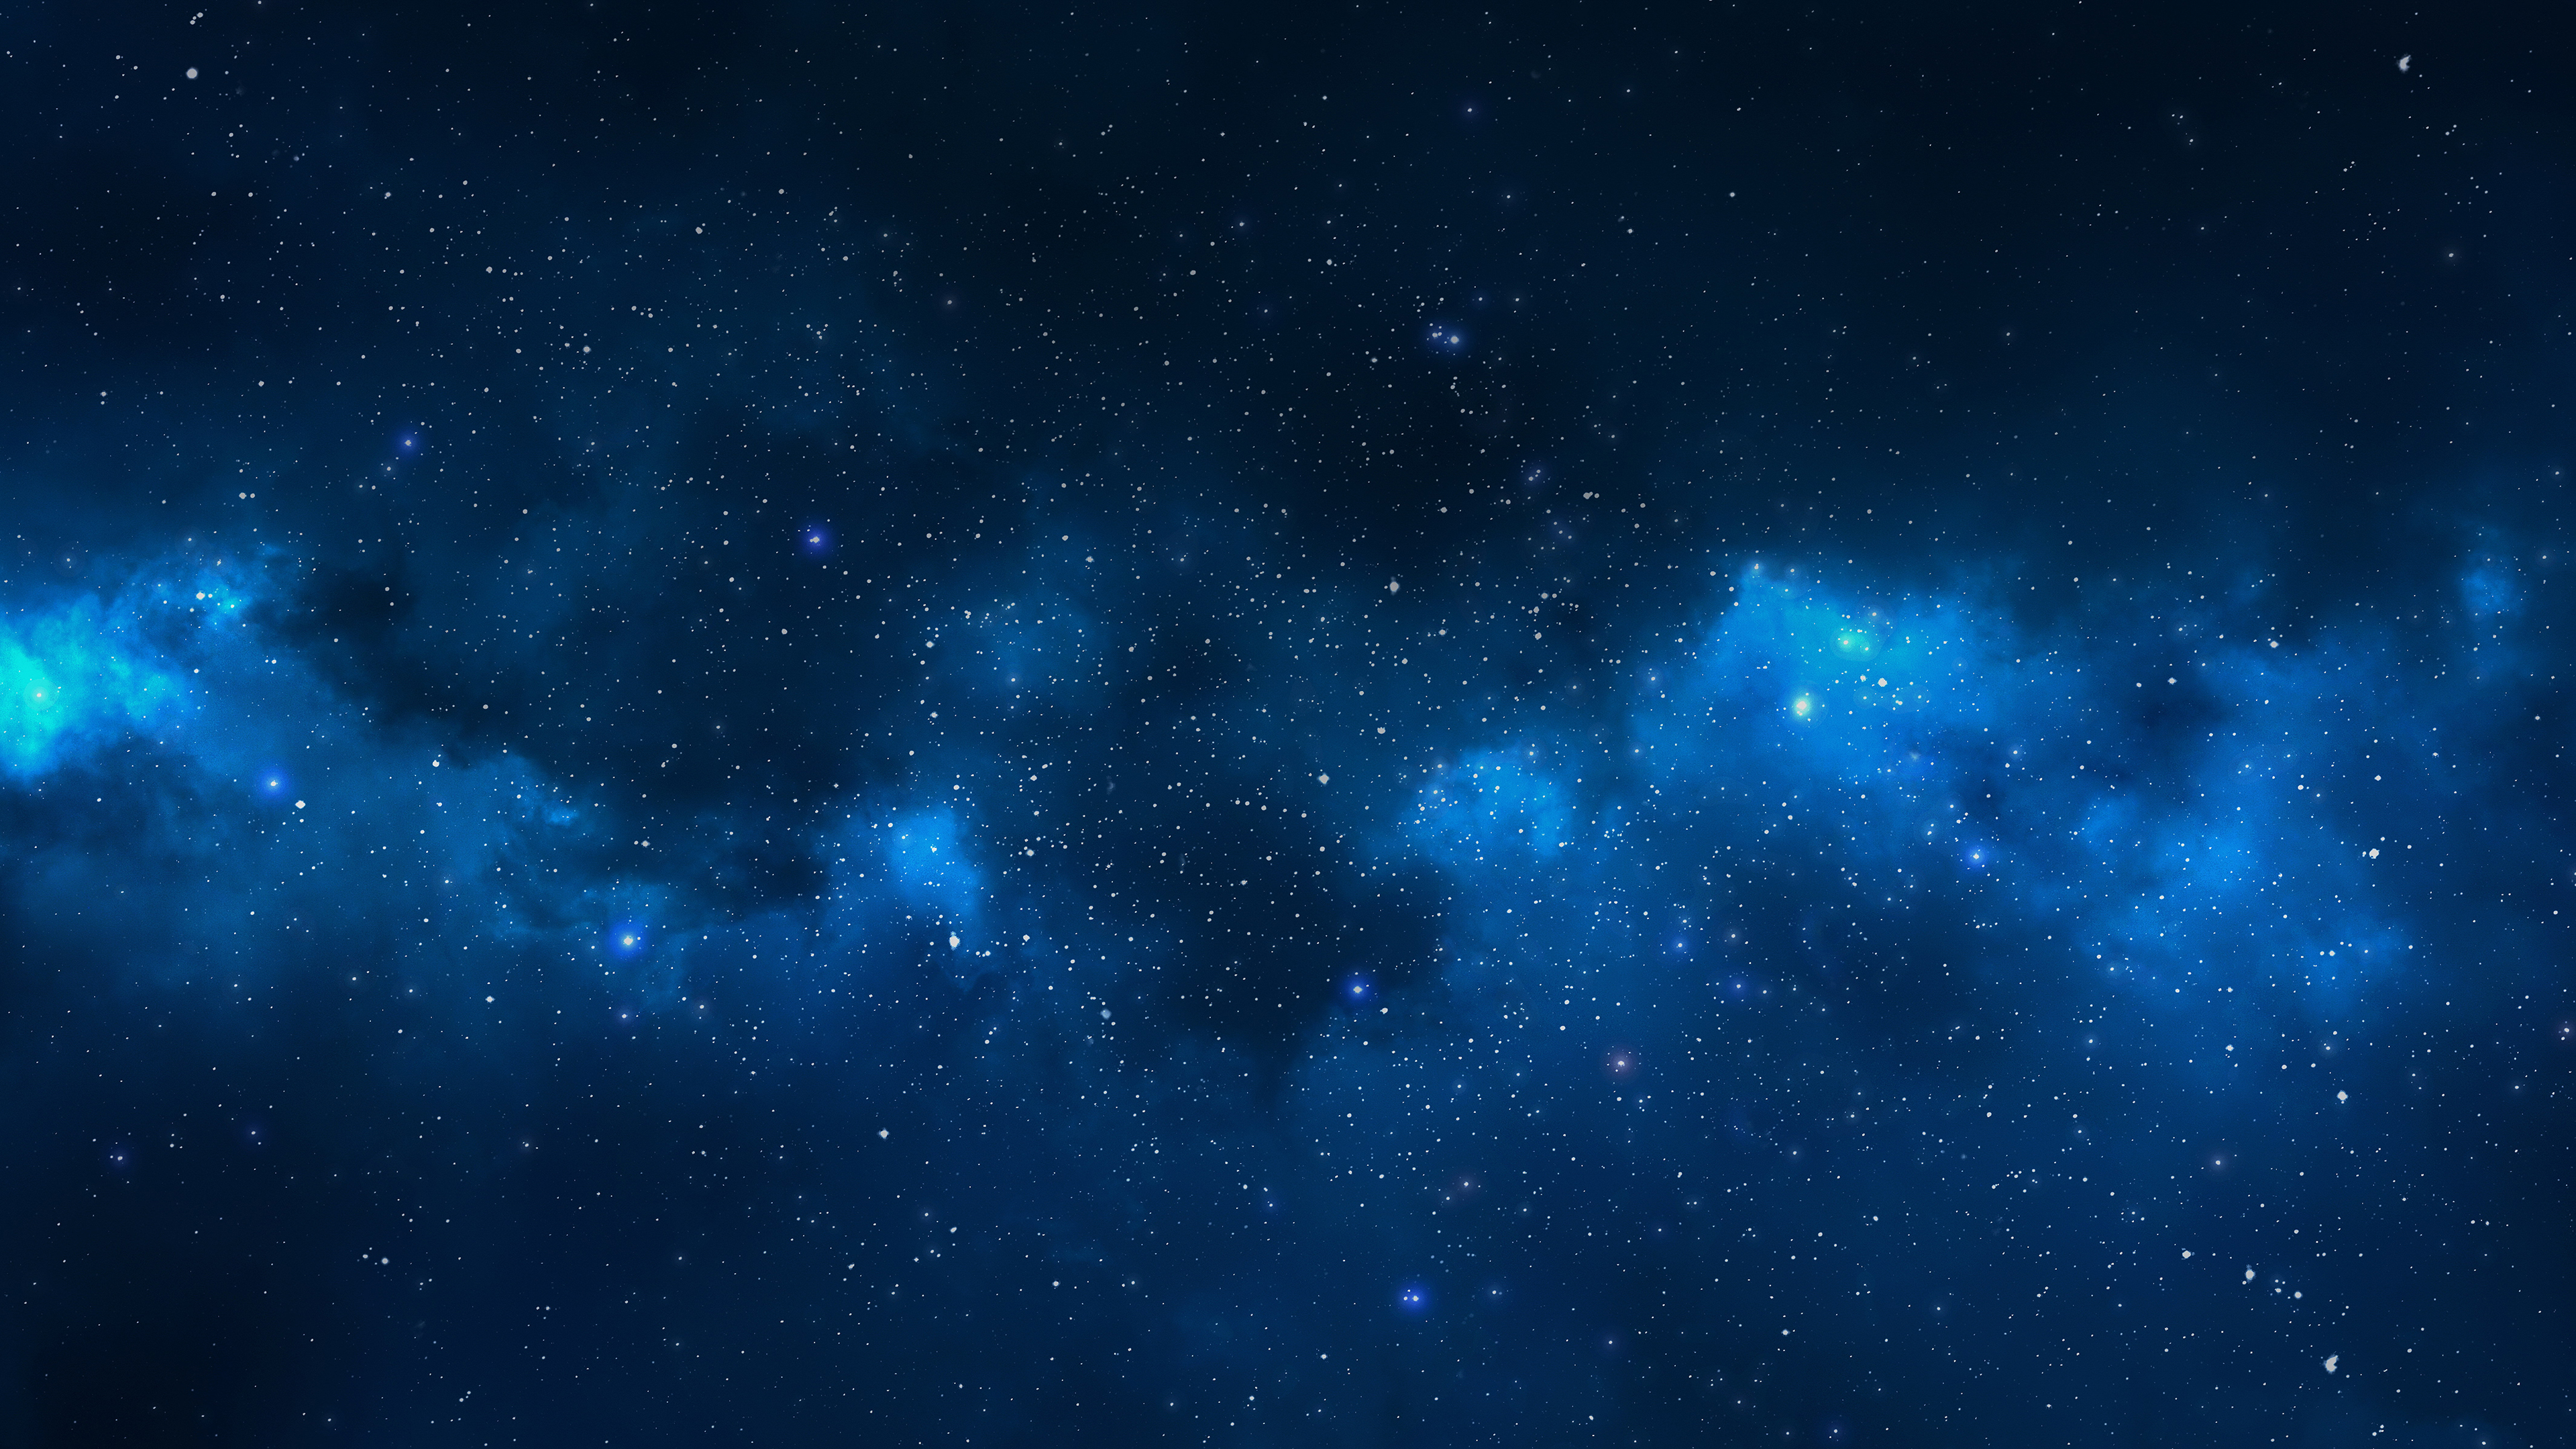 Space 4k Ultra Hd Wallpaper Background Image 3840x2160